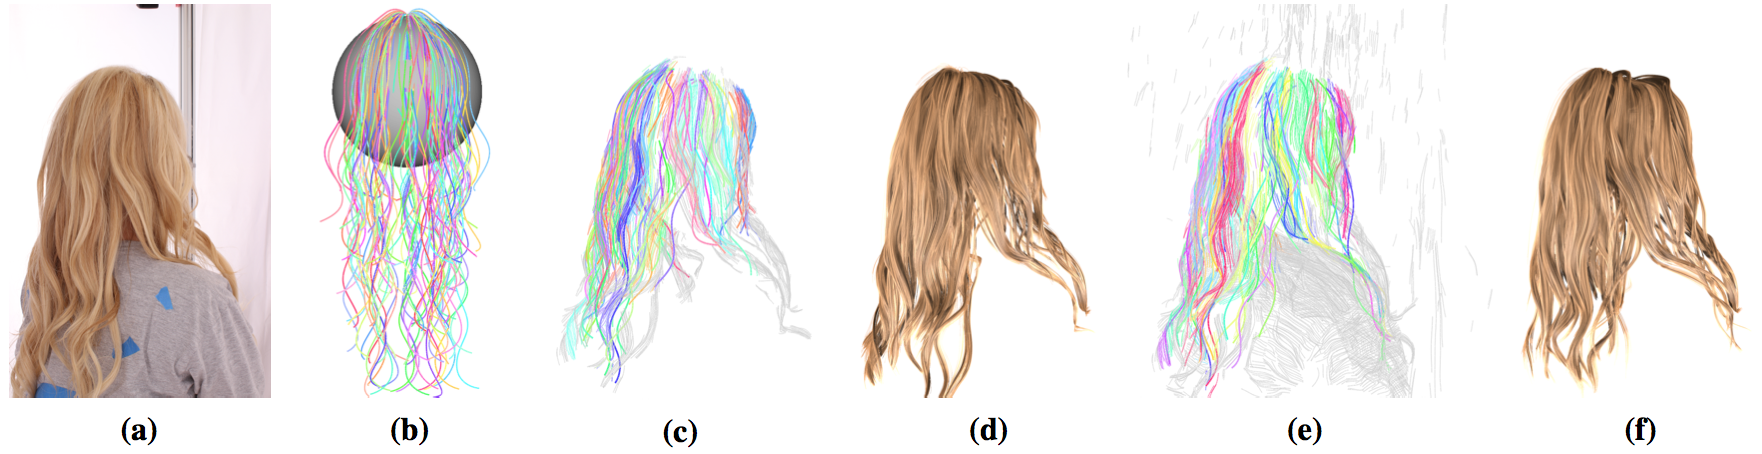 robust hair capture using simulated examples